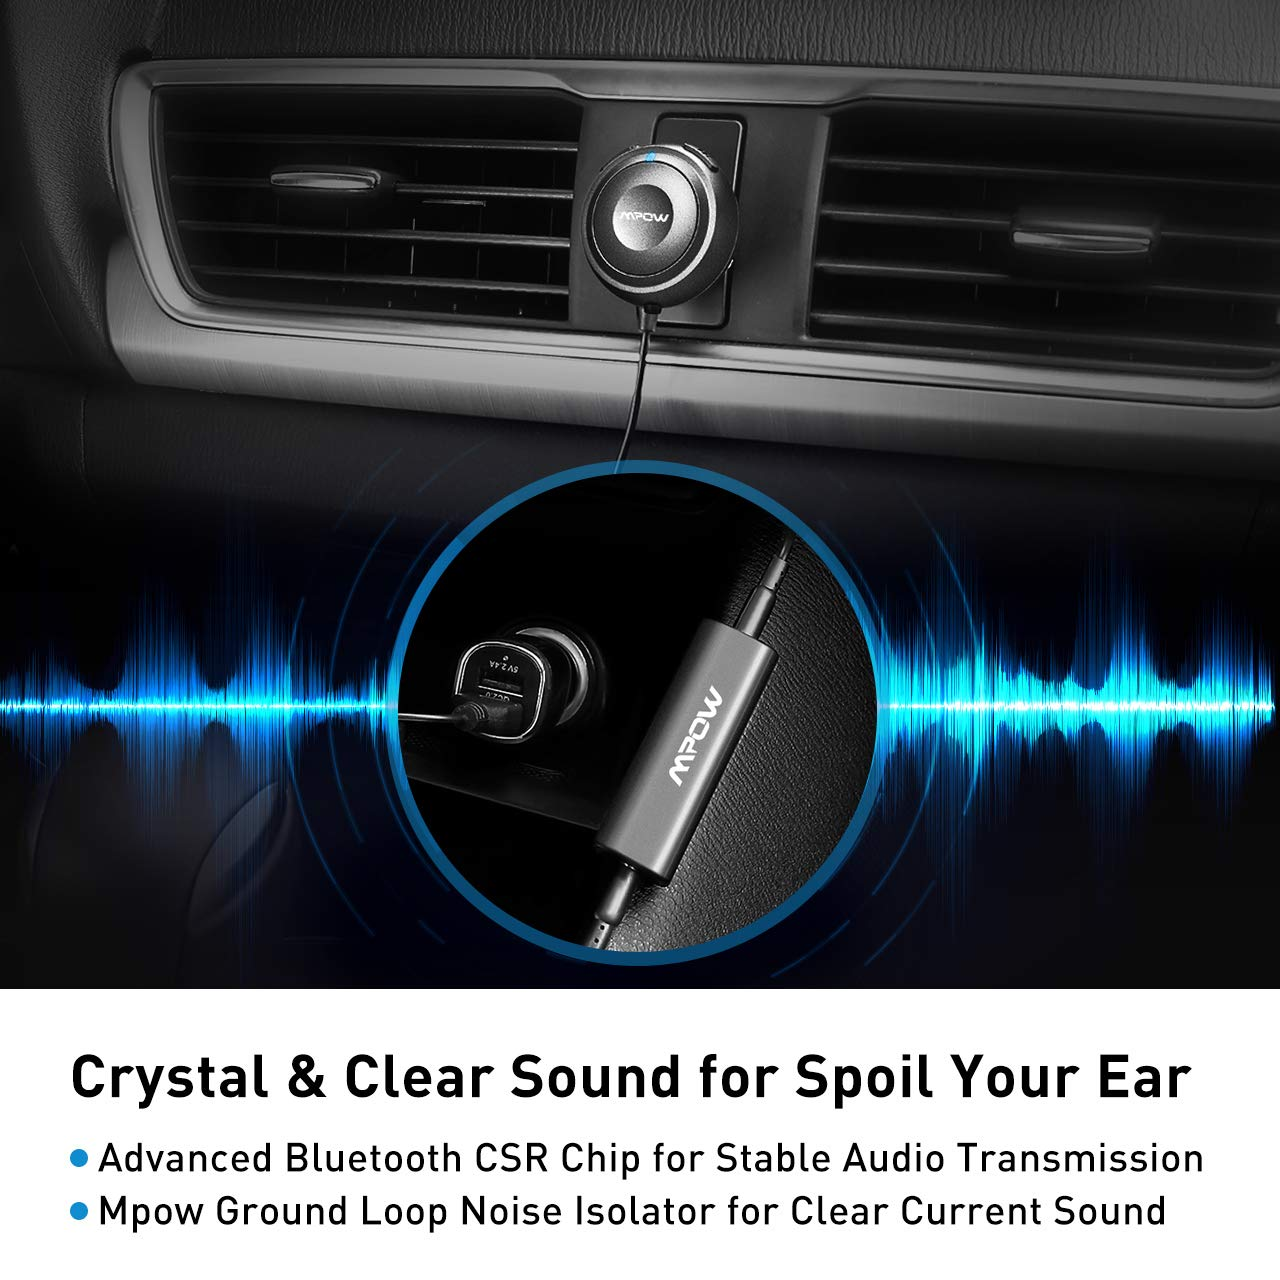 Mpow Bluetooth Receiver Car, Hands-Free Car Kits/Bluetooth AUX Car Adapter 3 in 1 Dual USB Car Charger & Ground Loop Noise Isolator Car Audio System (HFP/HSP/A2DP/AVRCP) by Mpow (Image #4)